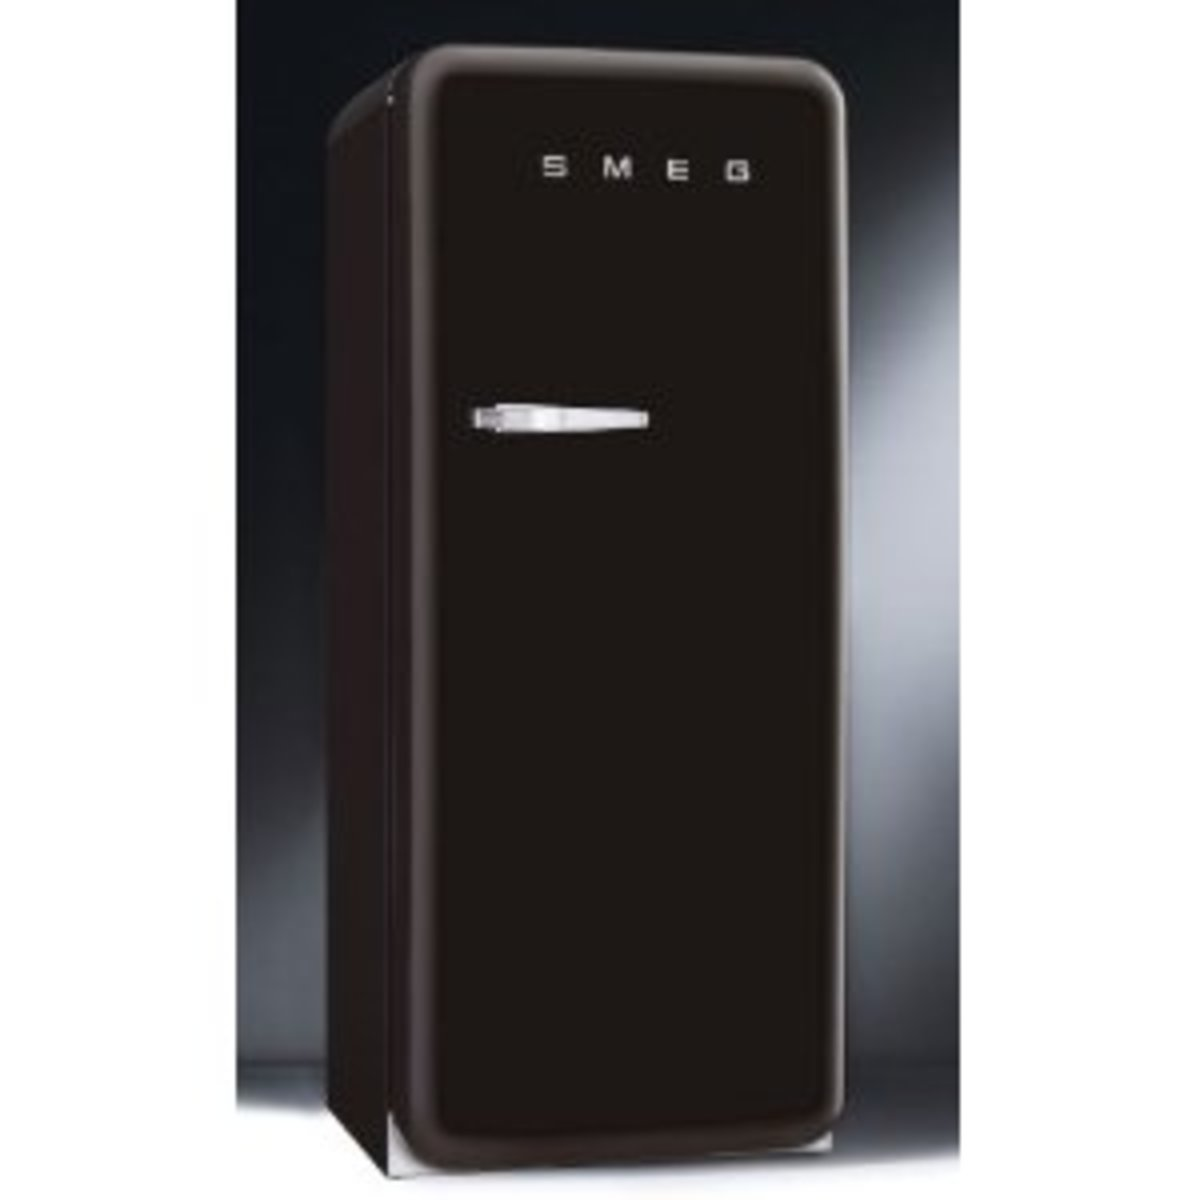 Black beauty - Smeg fridge